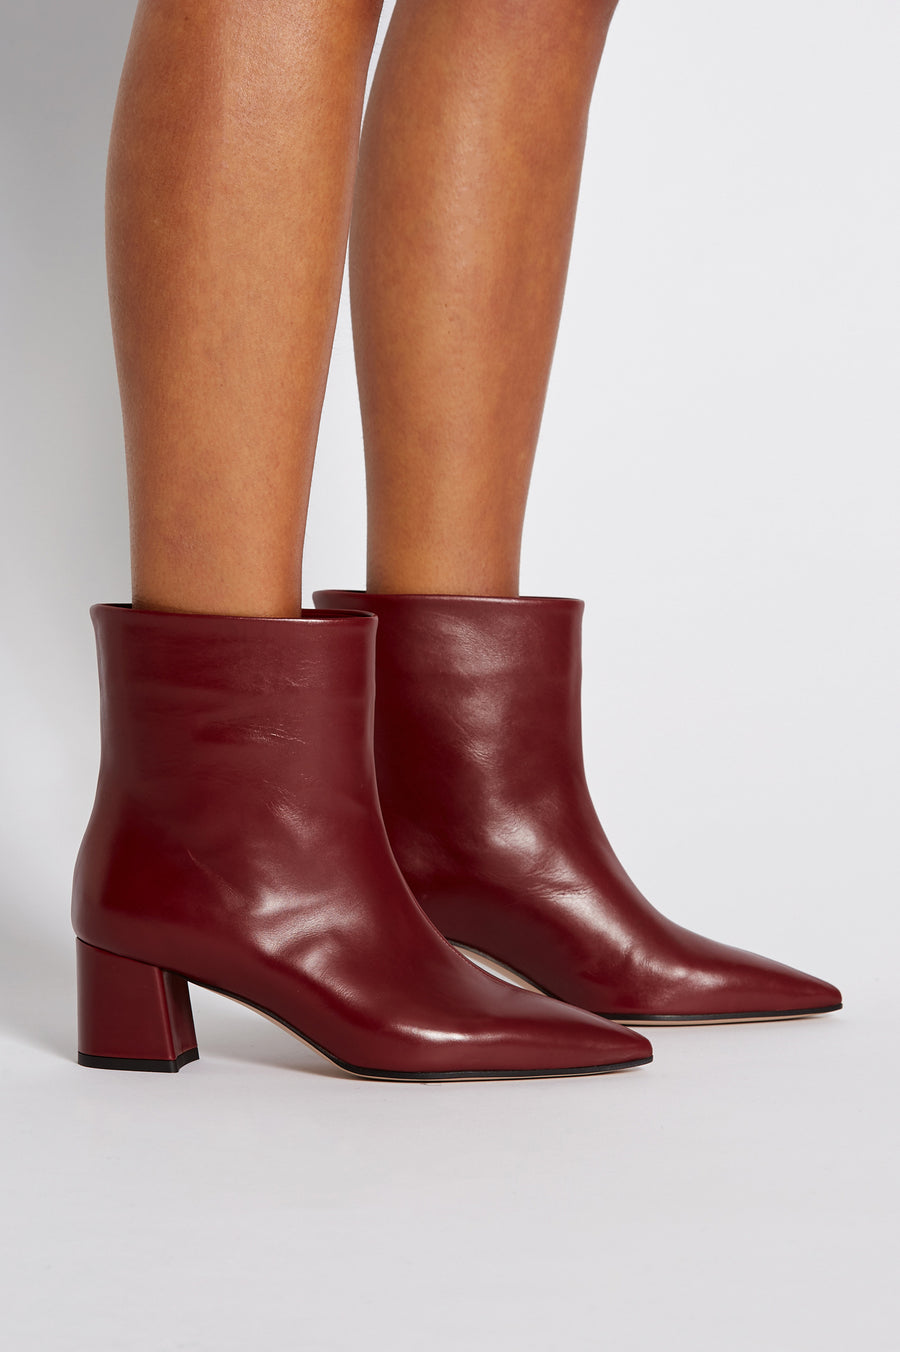 Block Heel Boot, pull on ankle, Italian calf leather. Heel height approx 6cm. Color Red Bordeaux